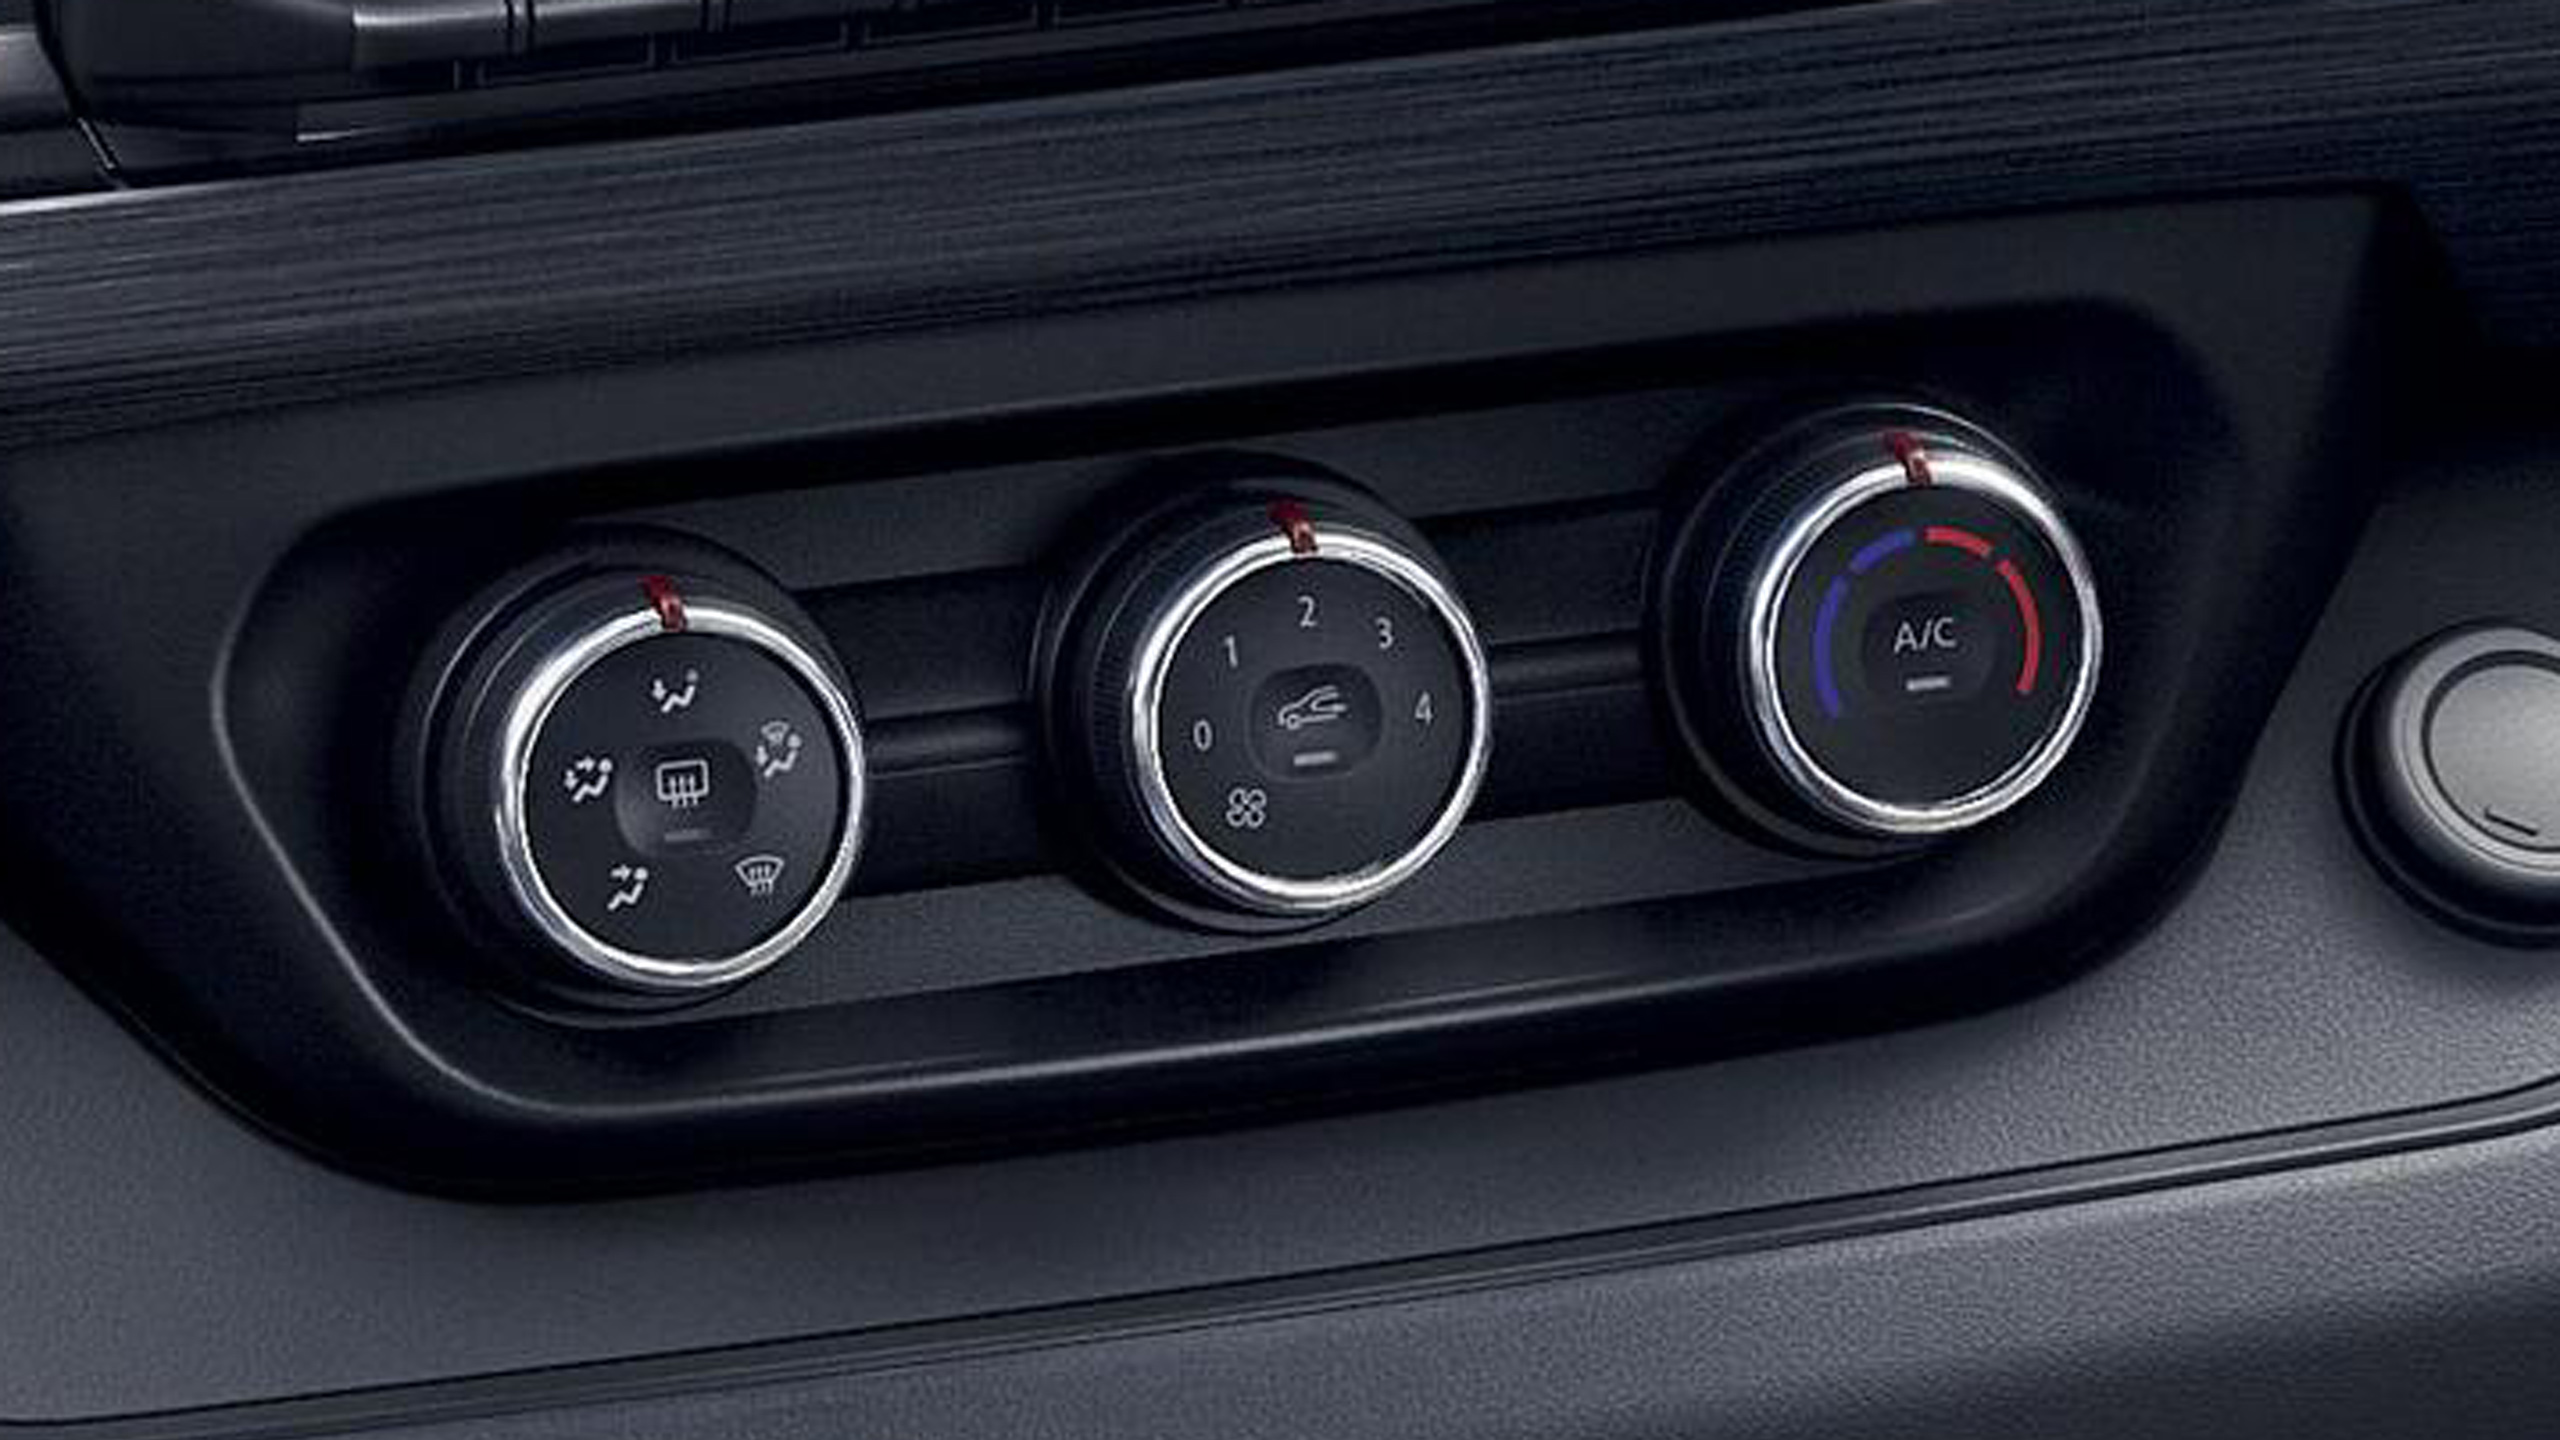 Manual air conditioning with pollen filter (front & rear)